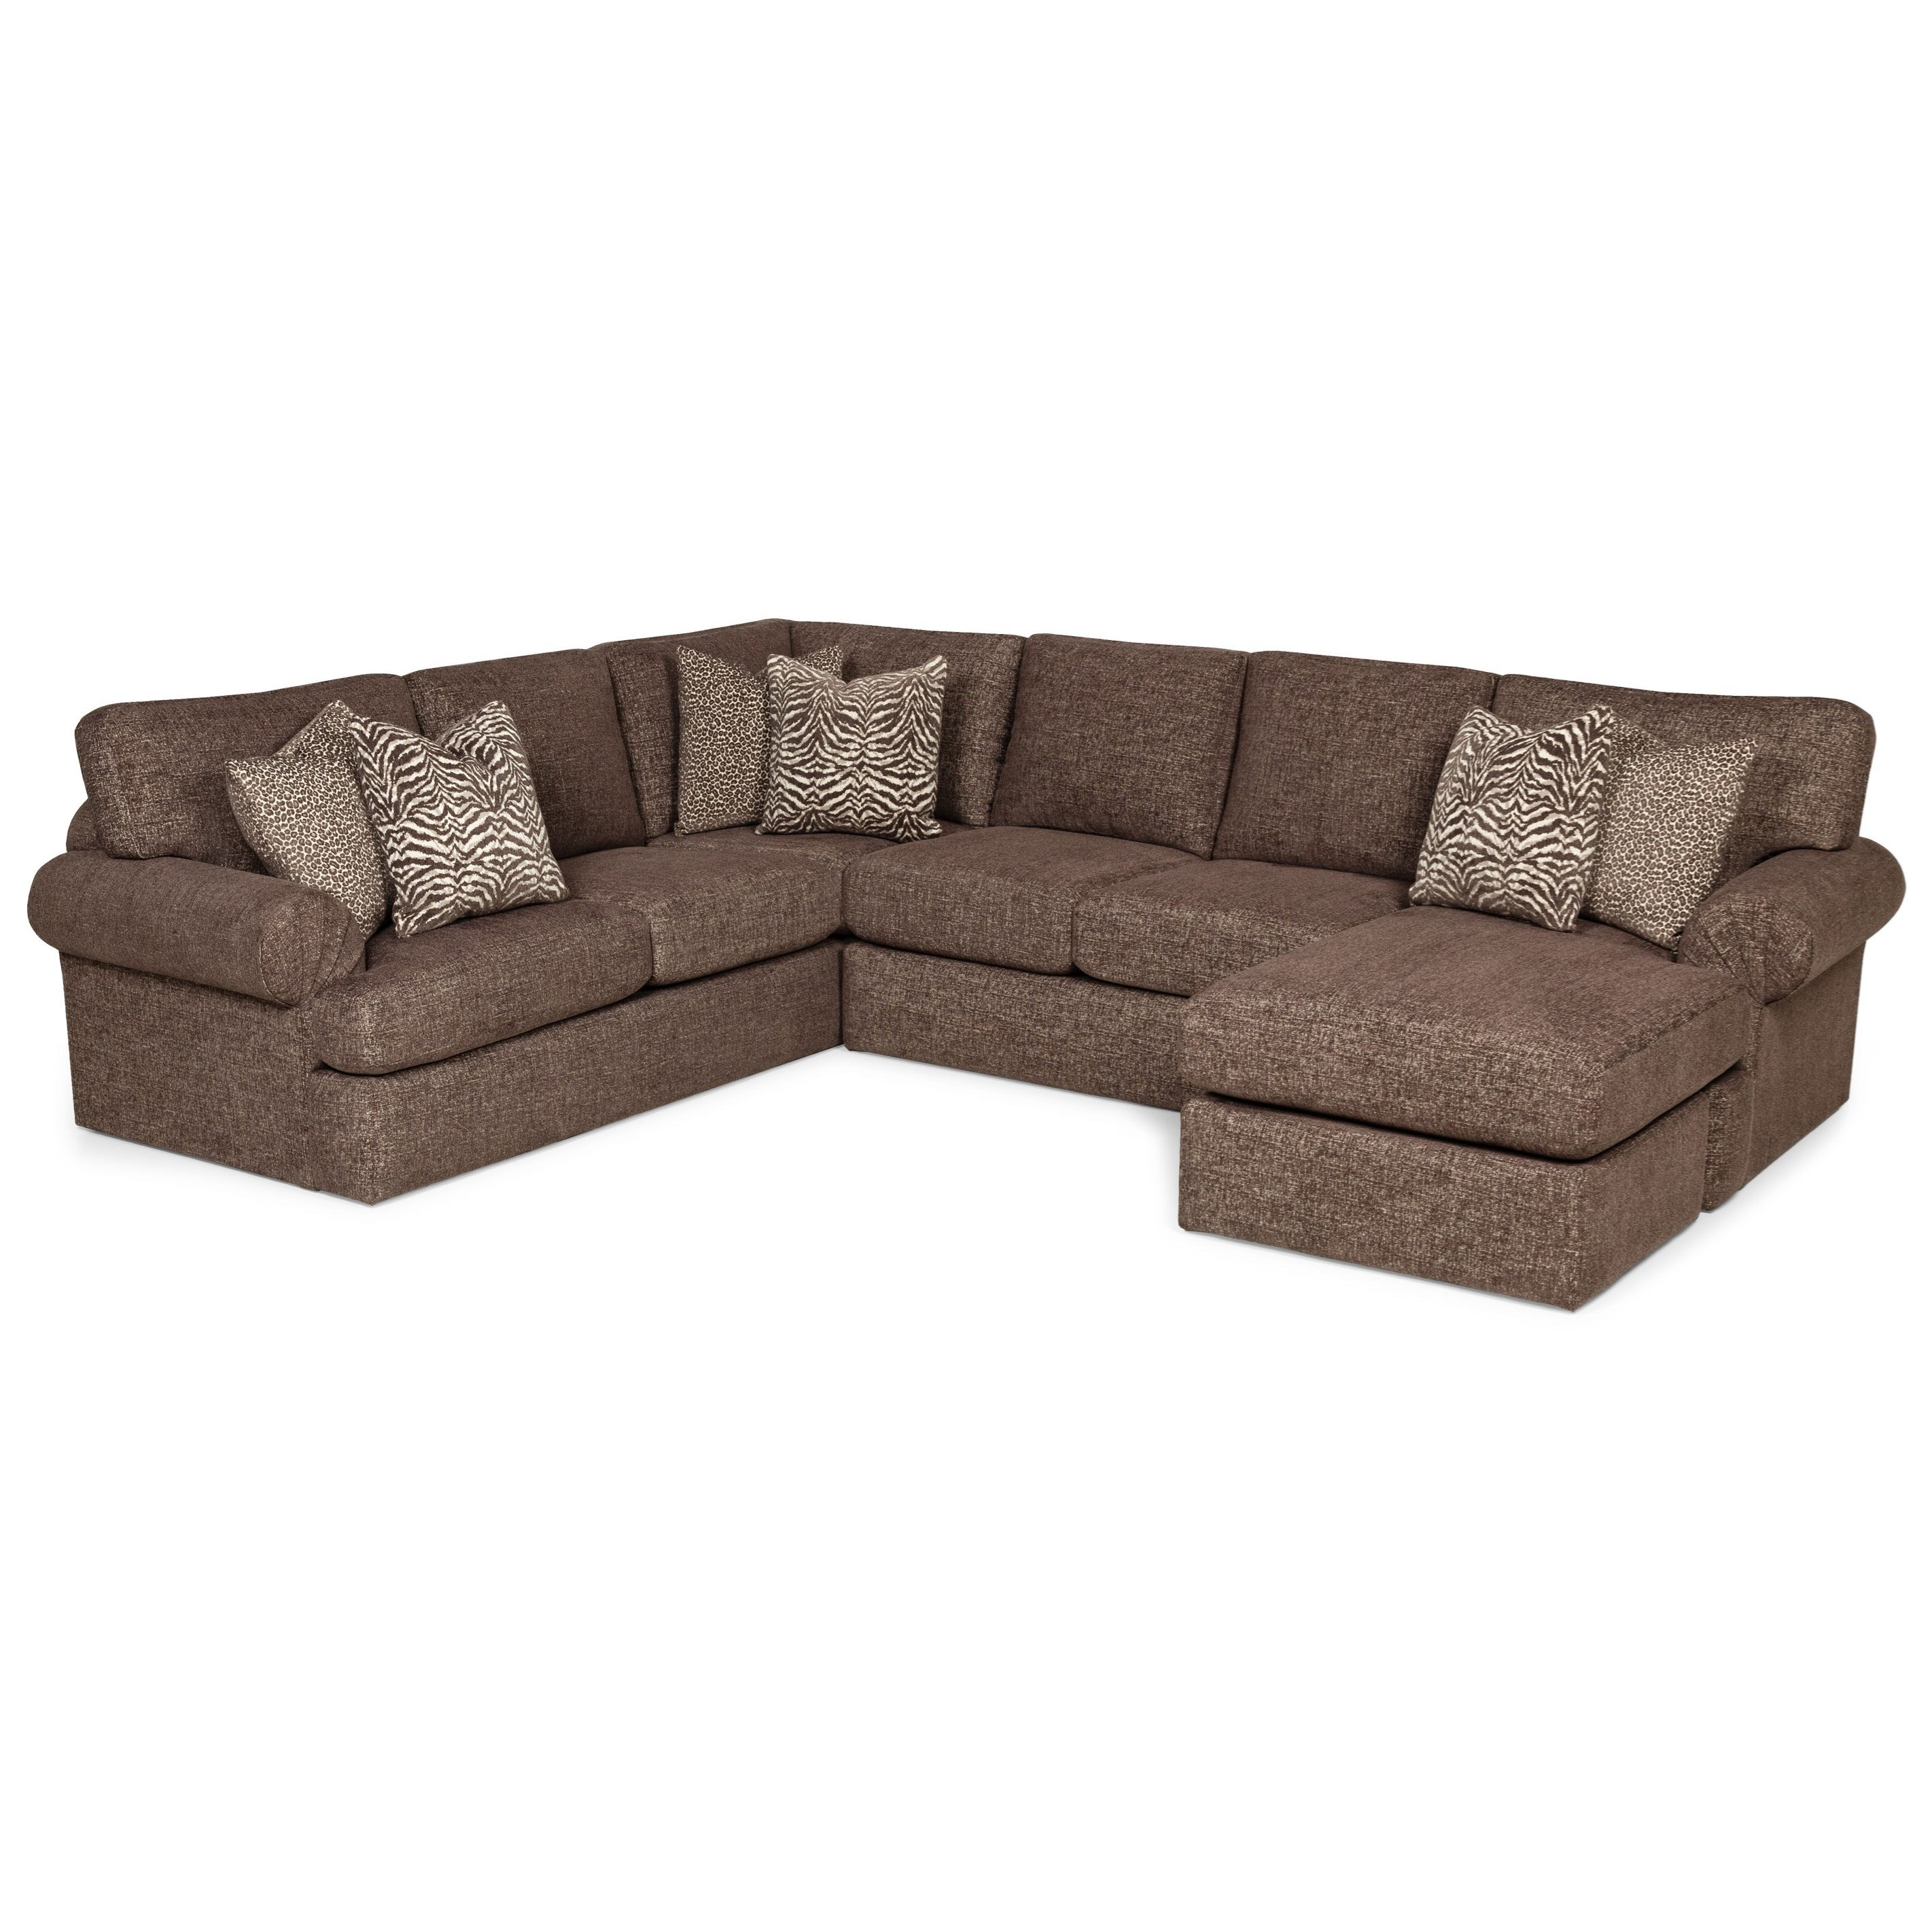 371 5-Seat Sectional Sofa w/ RAF Chaise by Stanton at Wilson's Furniture